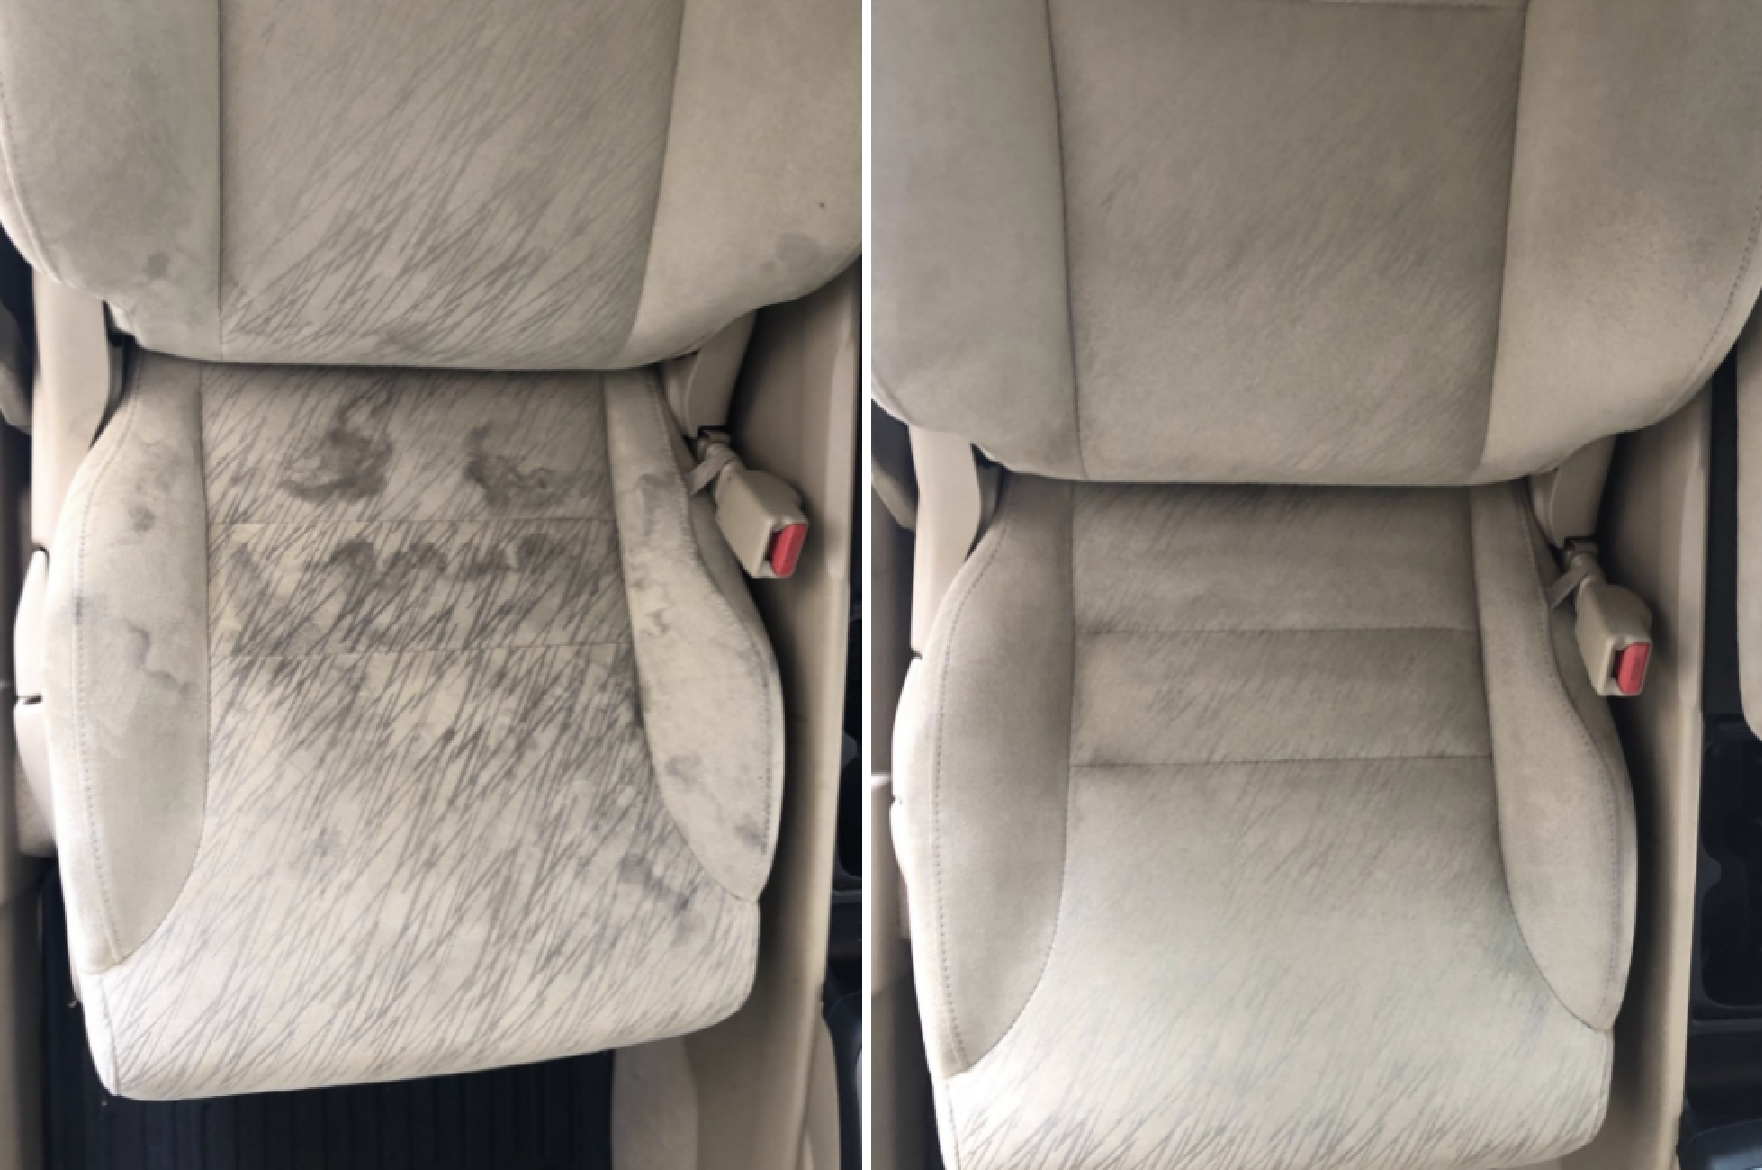 Reviewer's before-and-after image after using the car cleaner to remove stains from both the car seats